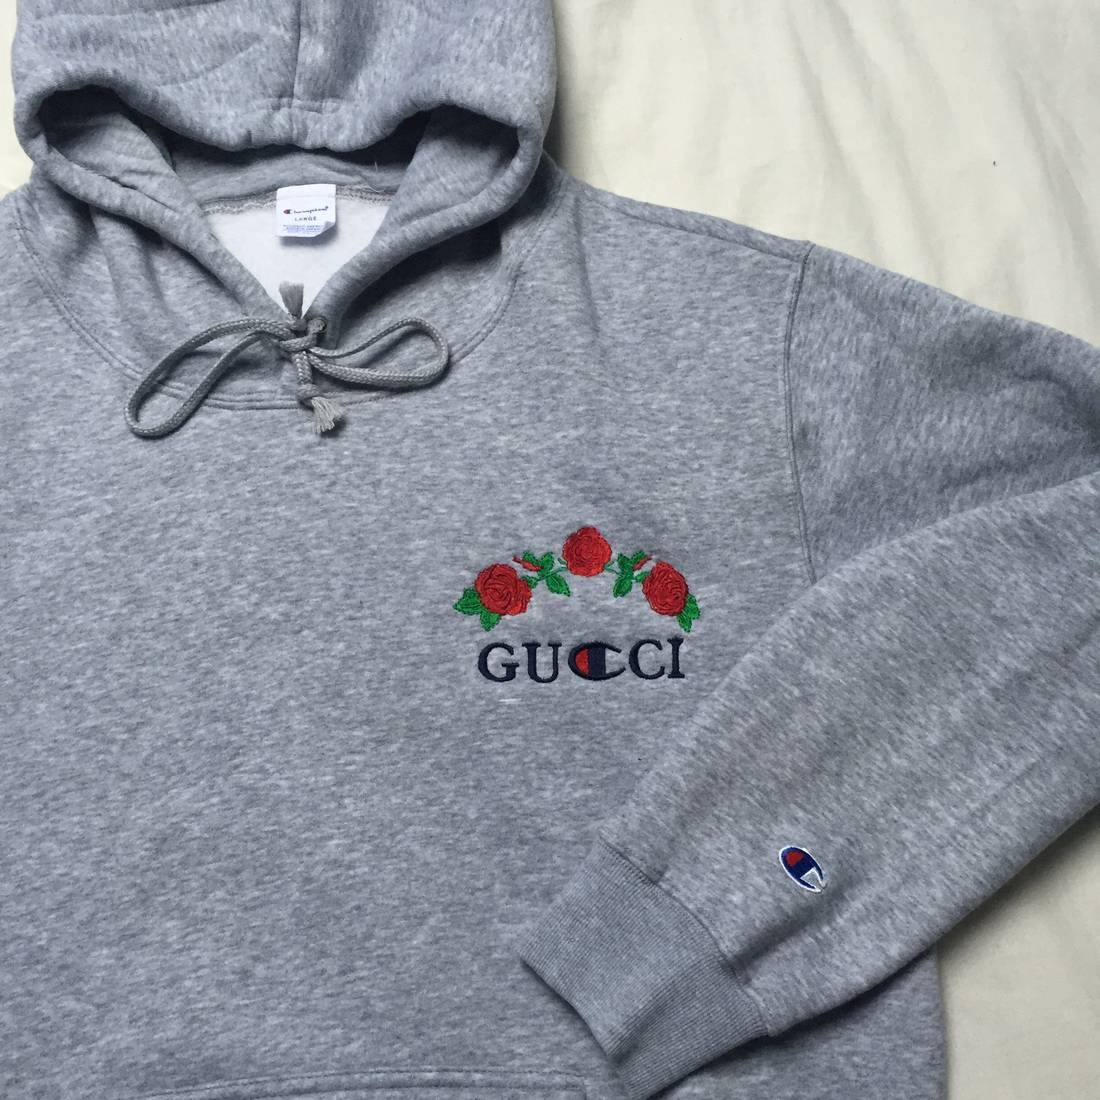 100% high quality arriving best prices Women Gucci x Champion Hoodie by Ava Nirui FREE SHIPPING sold by KawaiWorld